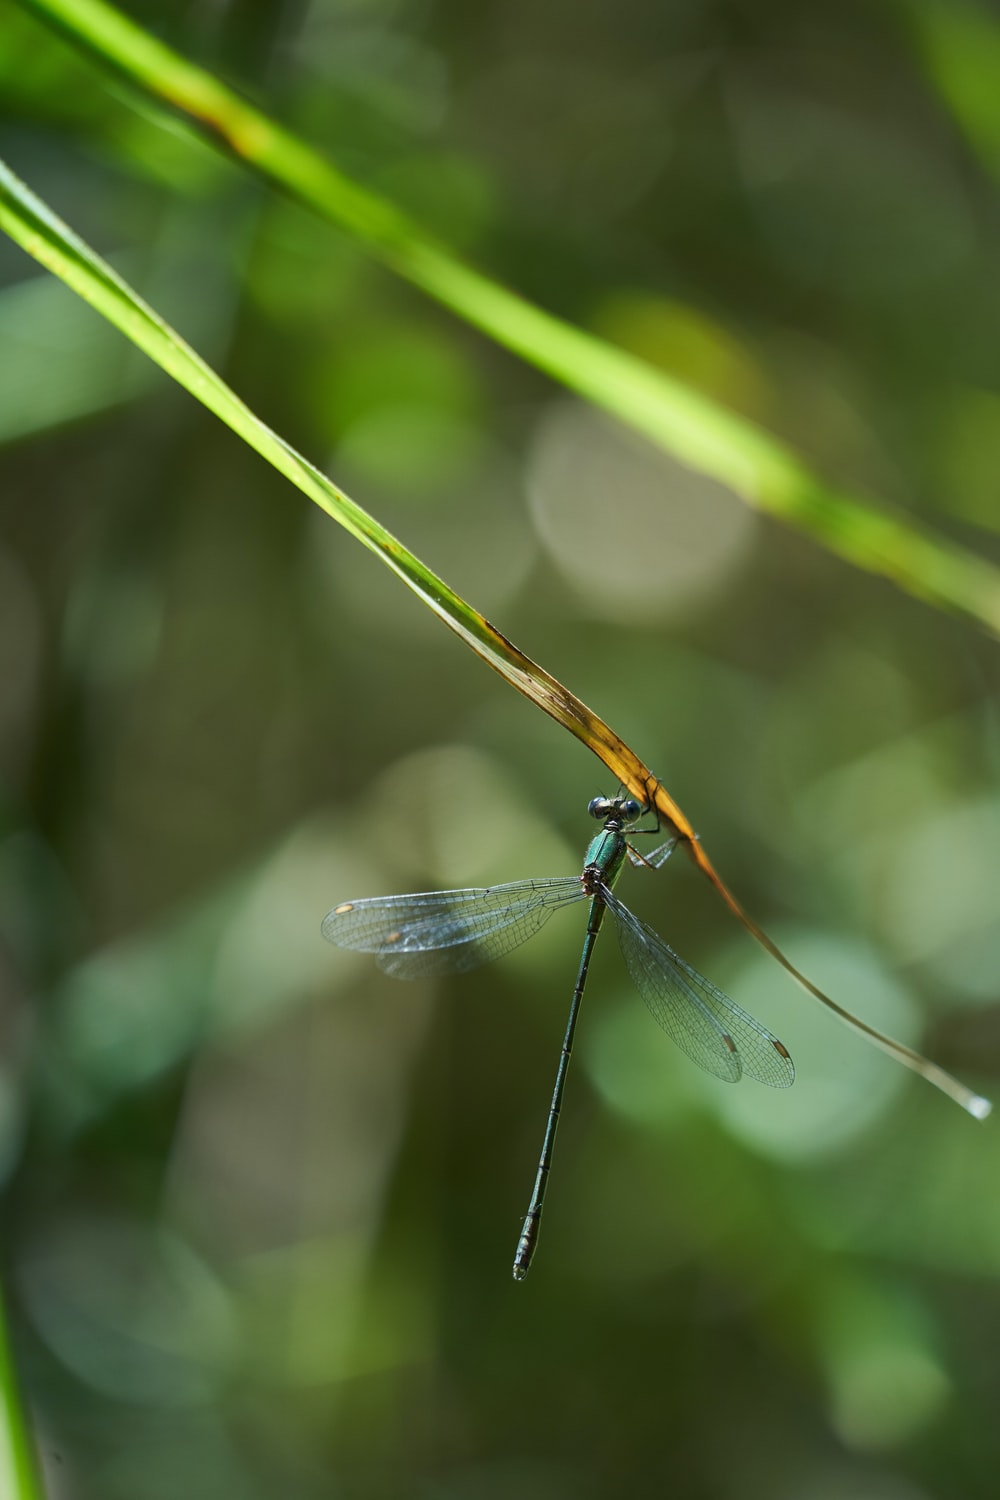 black and yellow dragonfly on green grass during daytime